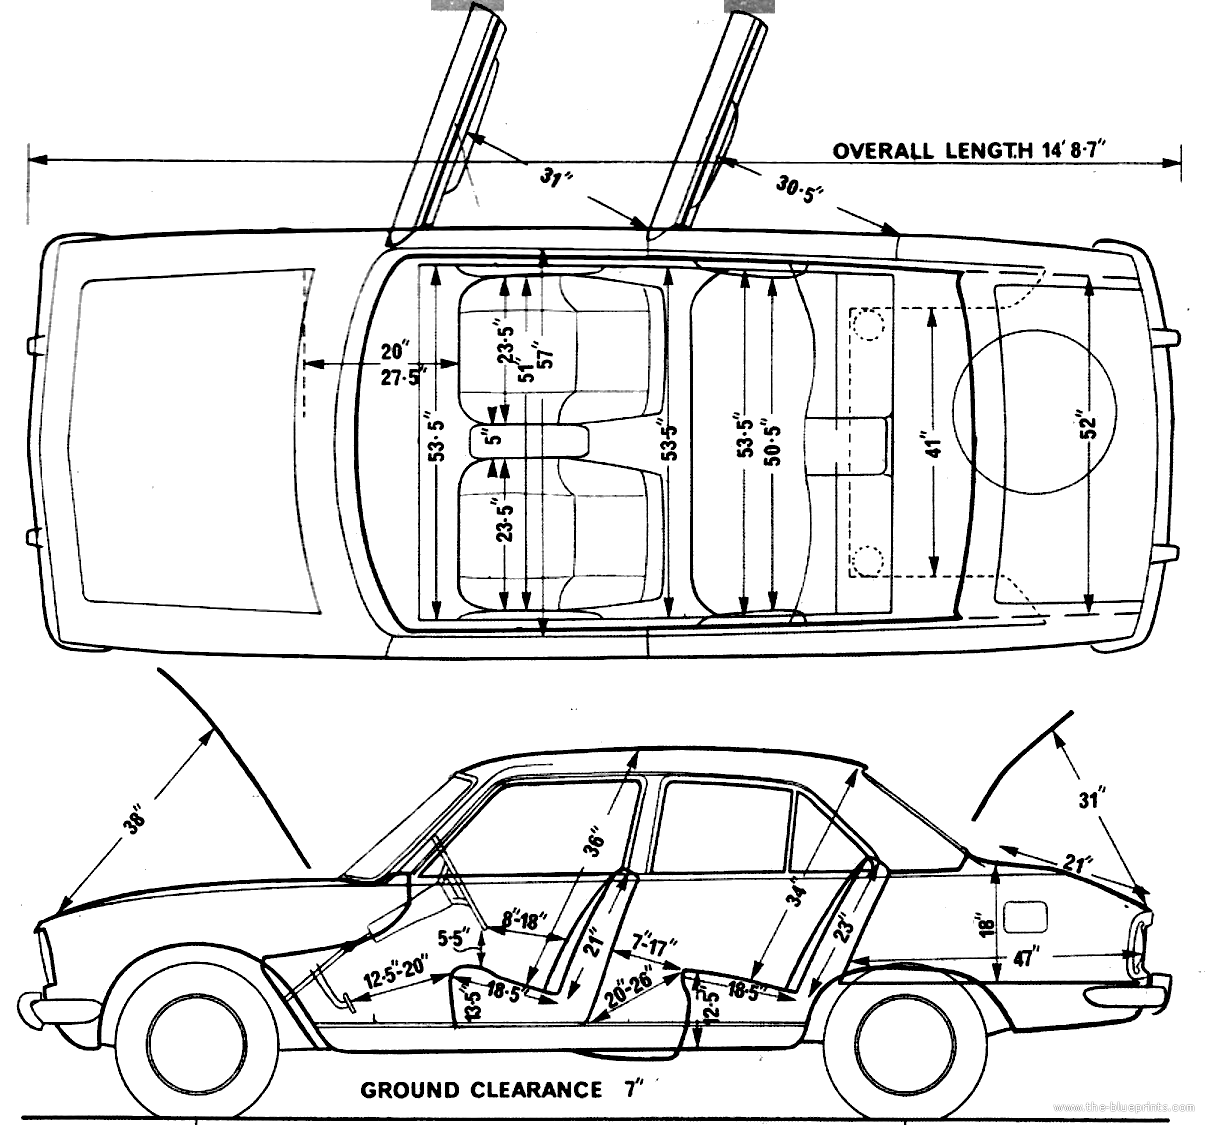 peugeot-504-injection-1968.png